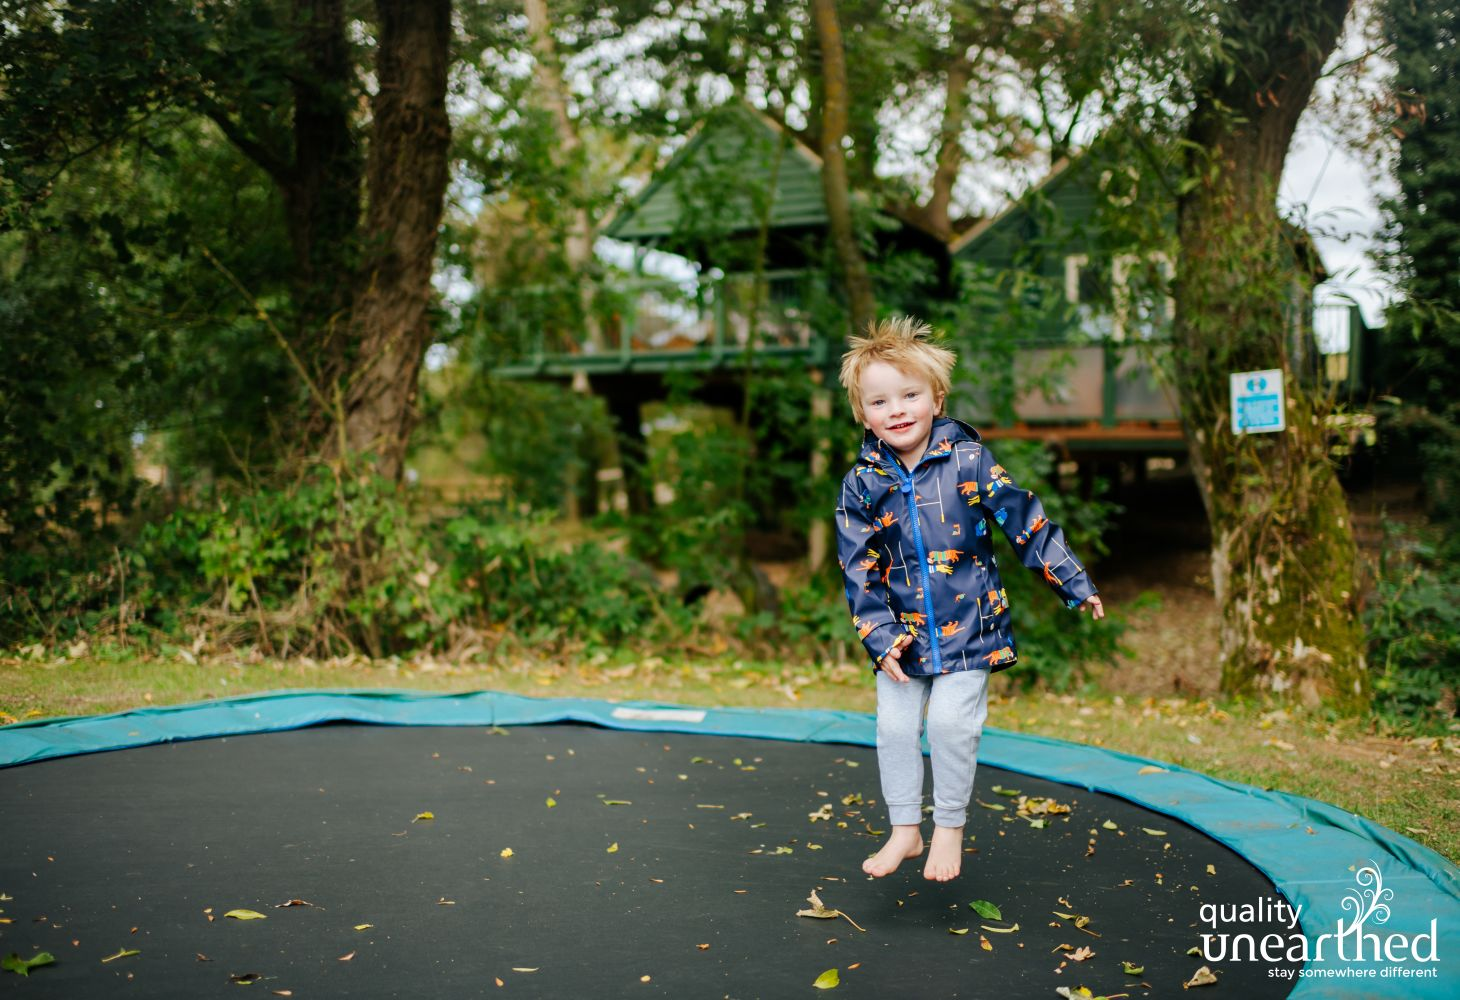 A little boy looks happy bouncing on the in ground trampoline, set in the Cotswold wood with the family treehouse in the background